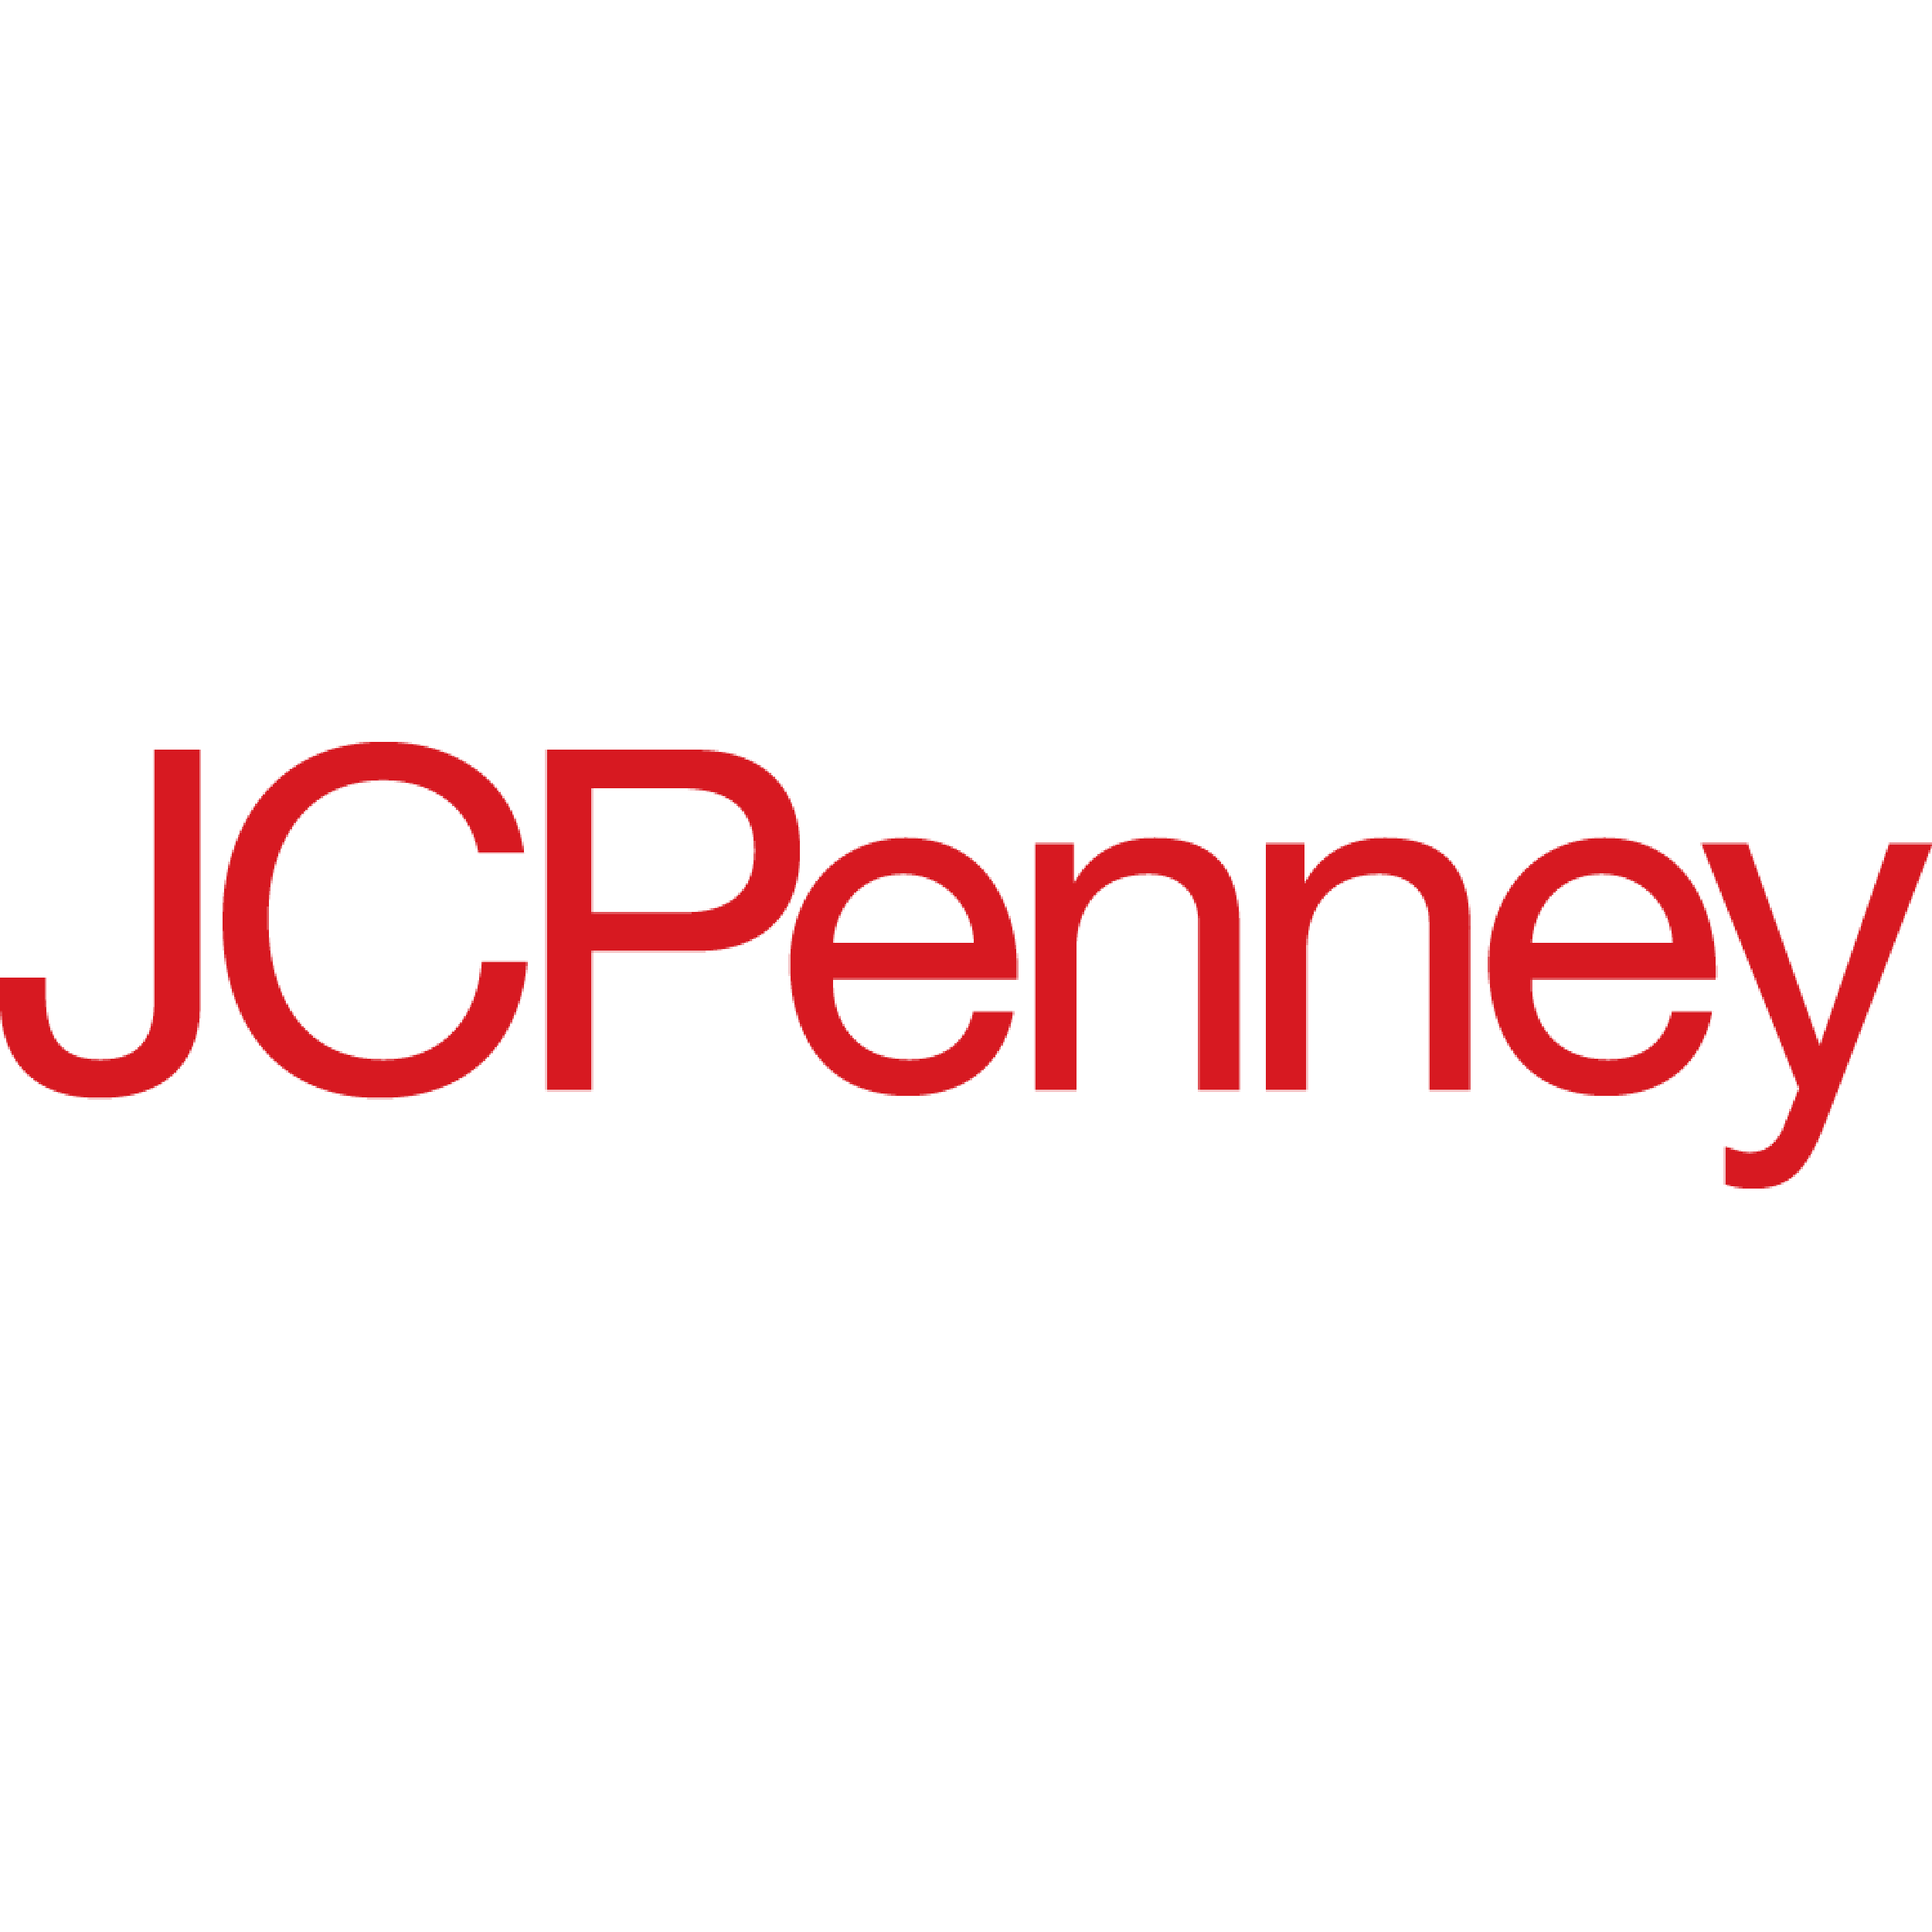 JCPenney - Terre Haute, IN 47802 - (812)232-3881 | ShowMeLocal.com